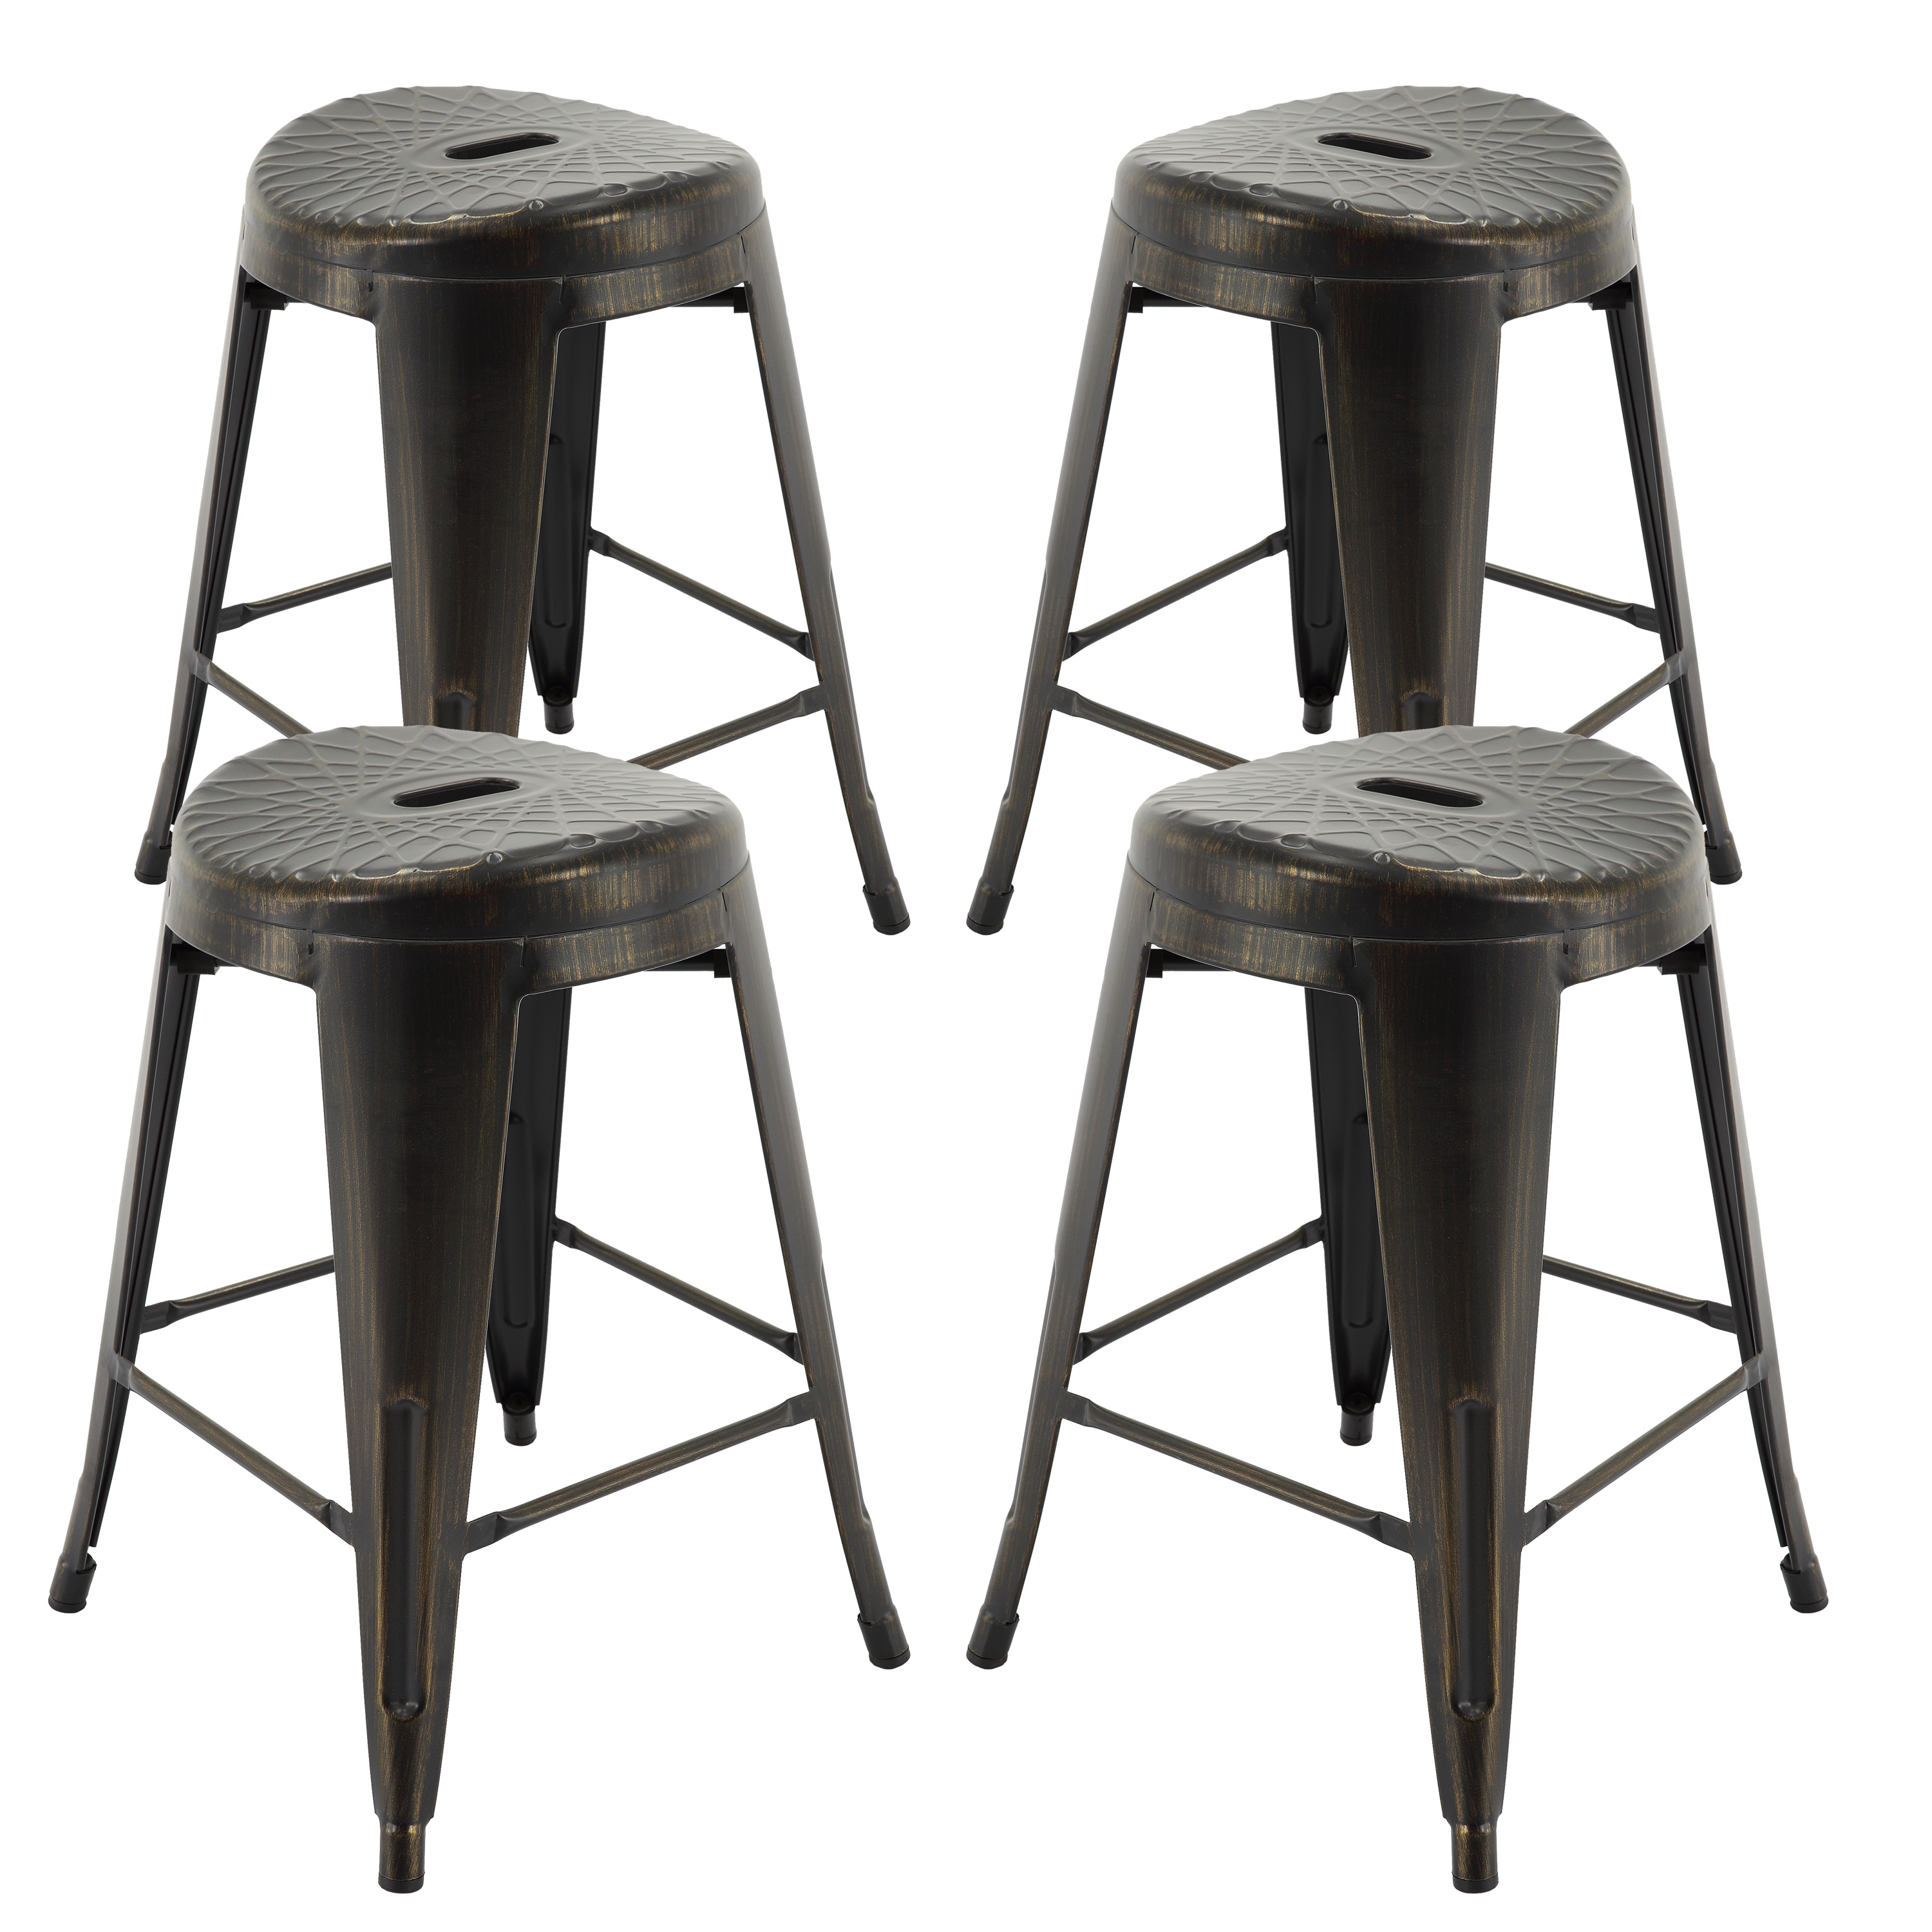 Shop vogue furniture direct metals natural patina metal 24 inch assembled backless bar stools set of 4 24h on sale free shipping today